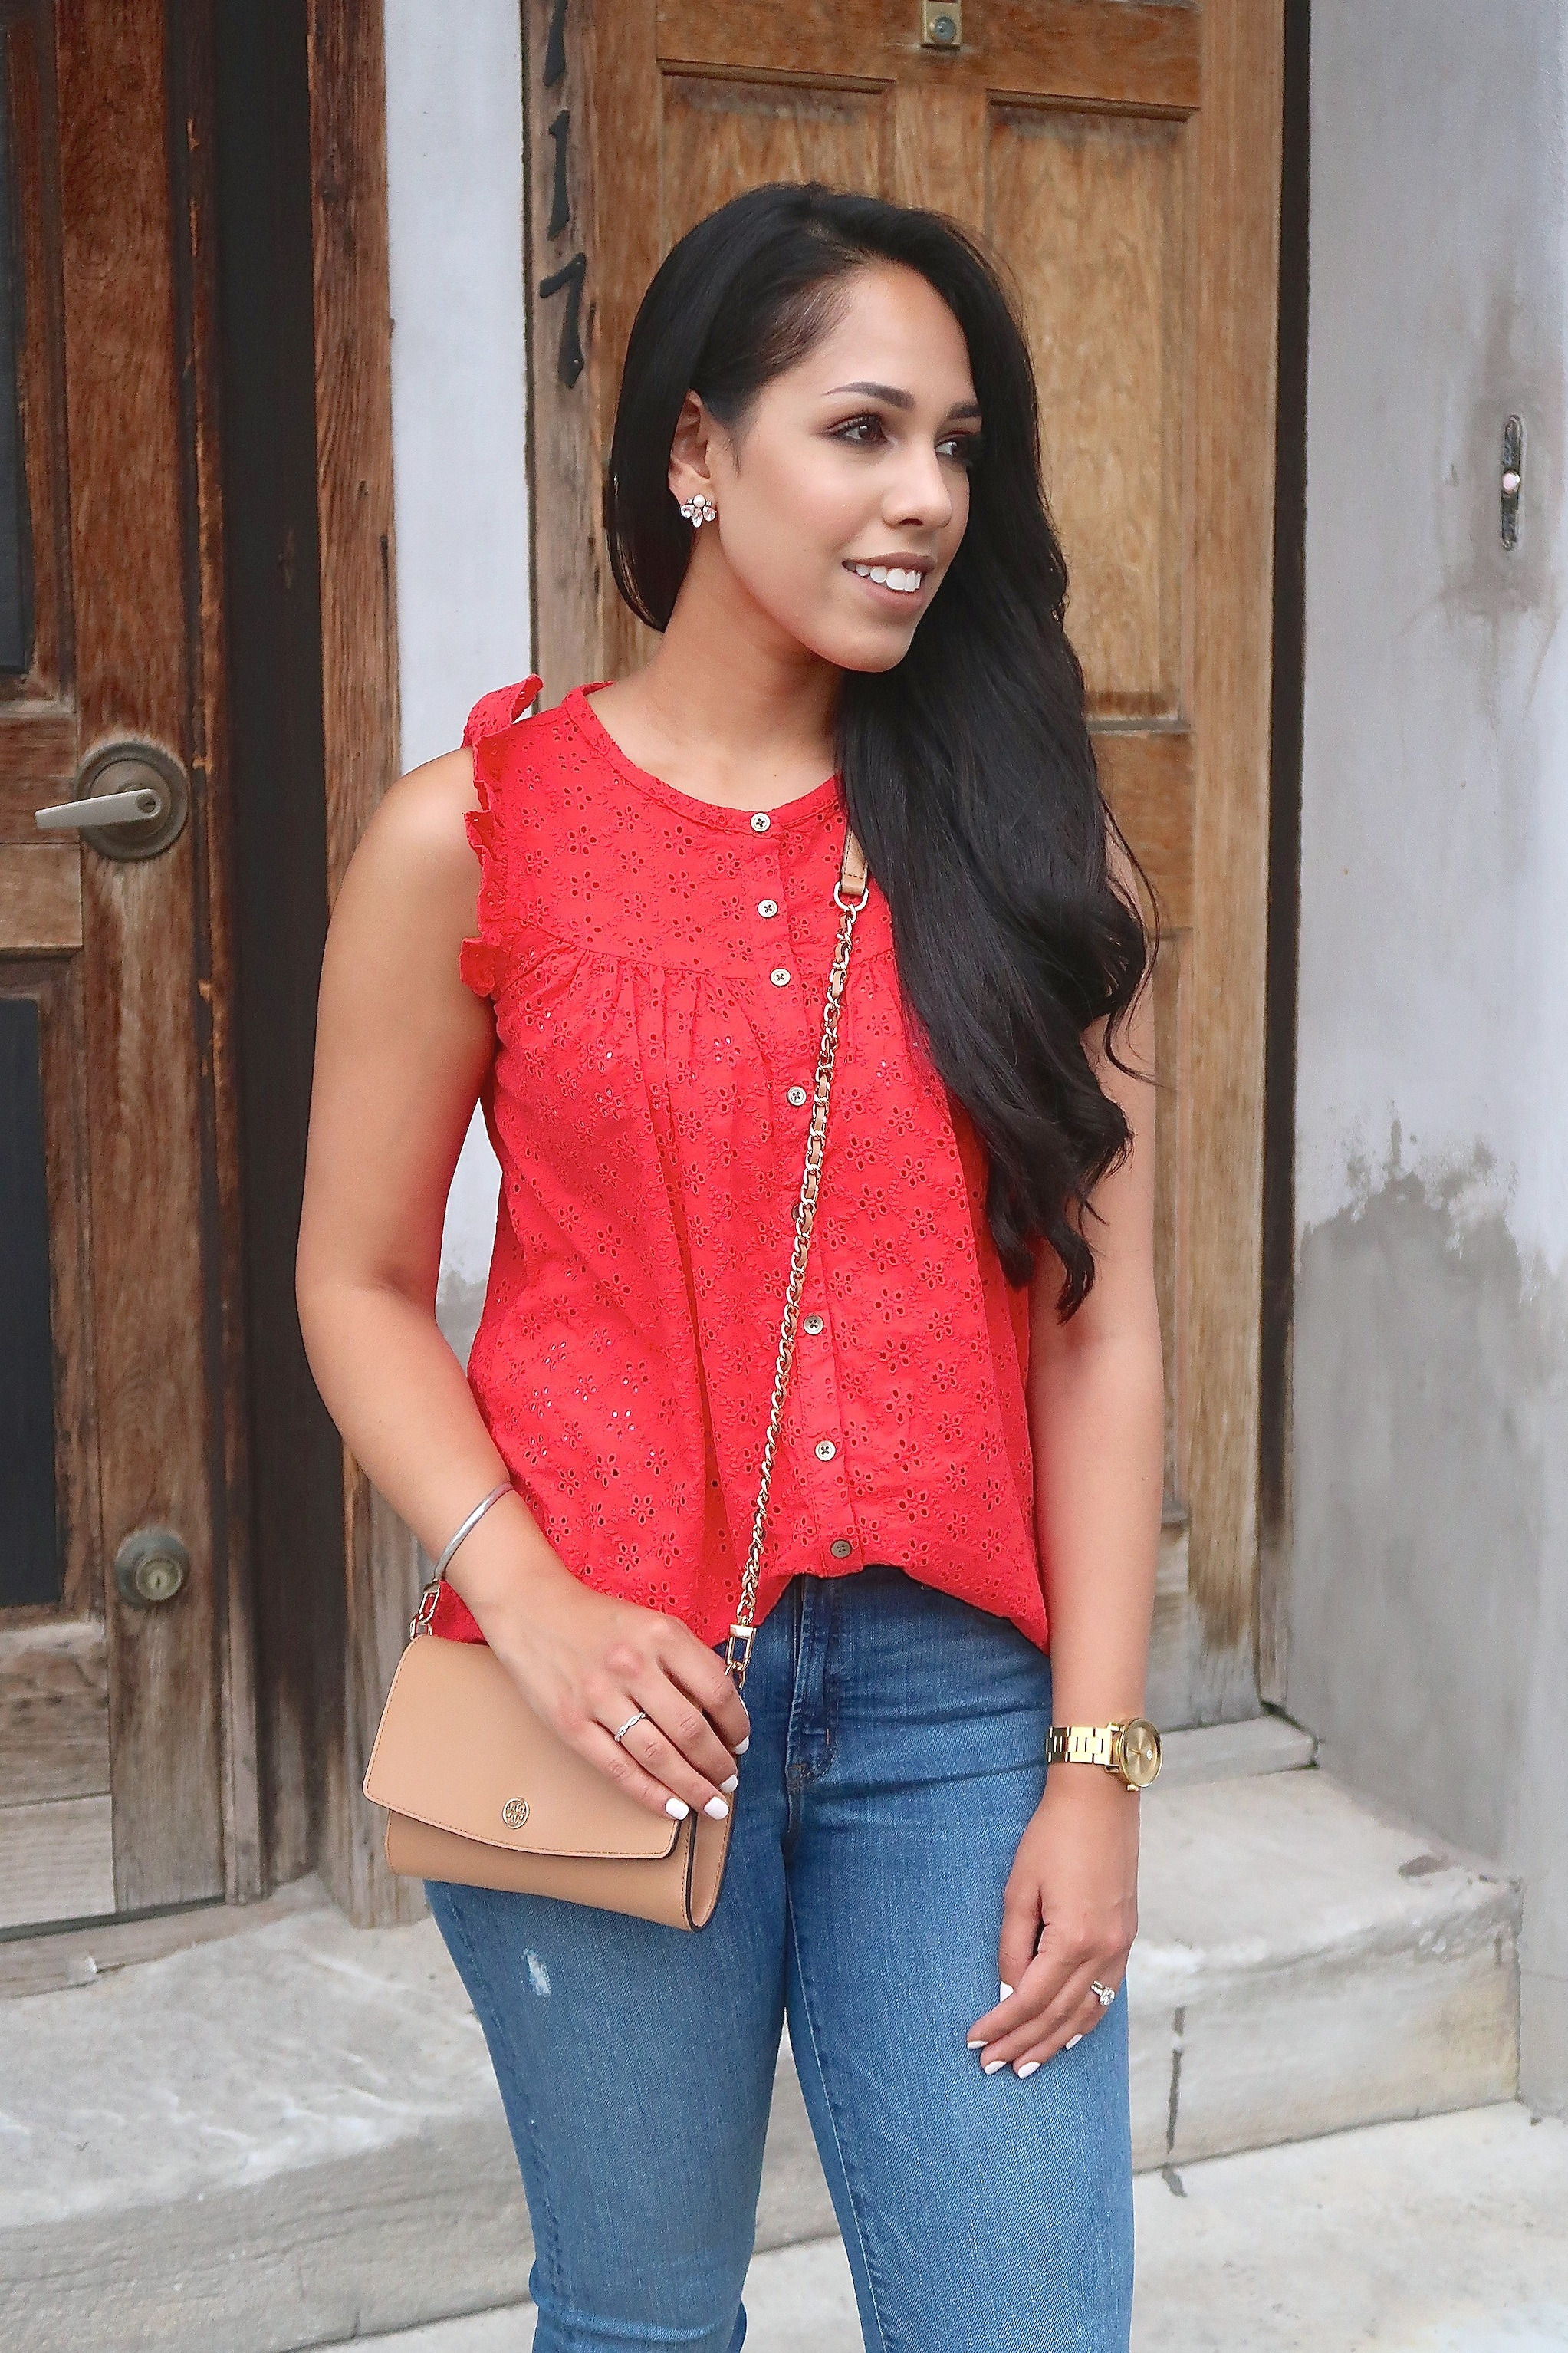 madewell-red-eyelet-top-sale-july-4th-summer.jpg